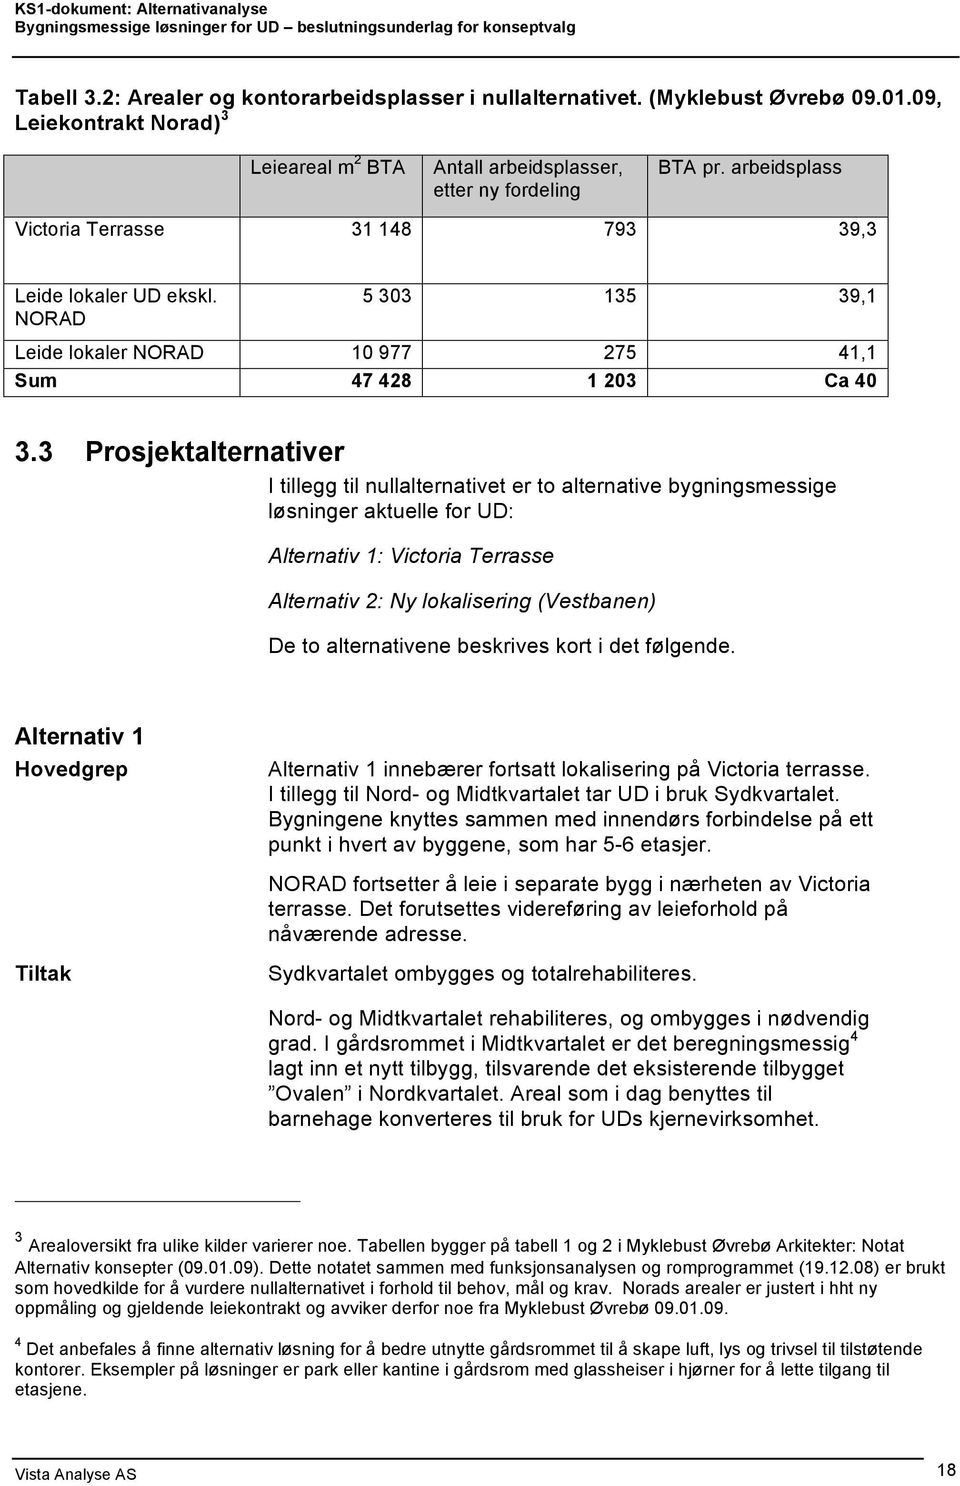 3 Prosjektalternativer I tillegg til nullalternativet er to alternative bygningsmessige løsninger aktuelle for UD: Alternativ 1: Victoria Terrasse Alternativ 2: Ny lokalisering (Vestbanen) De to